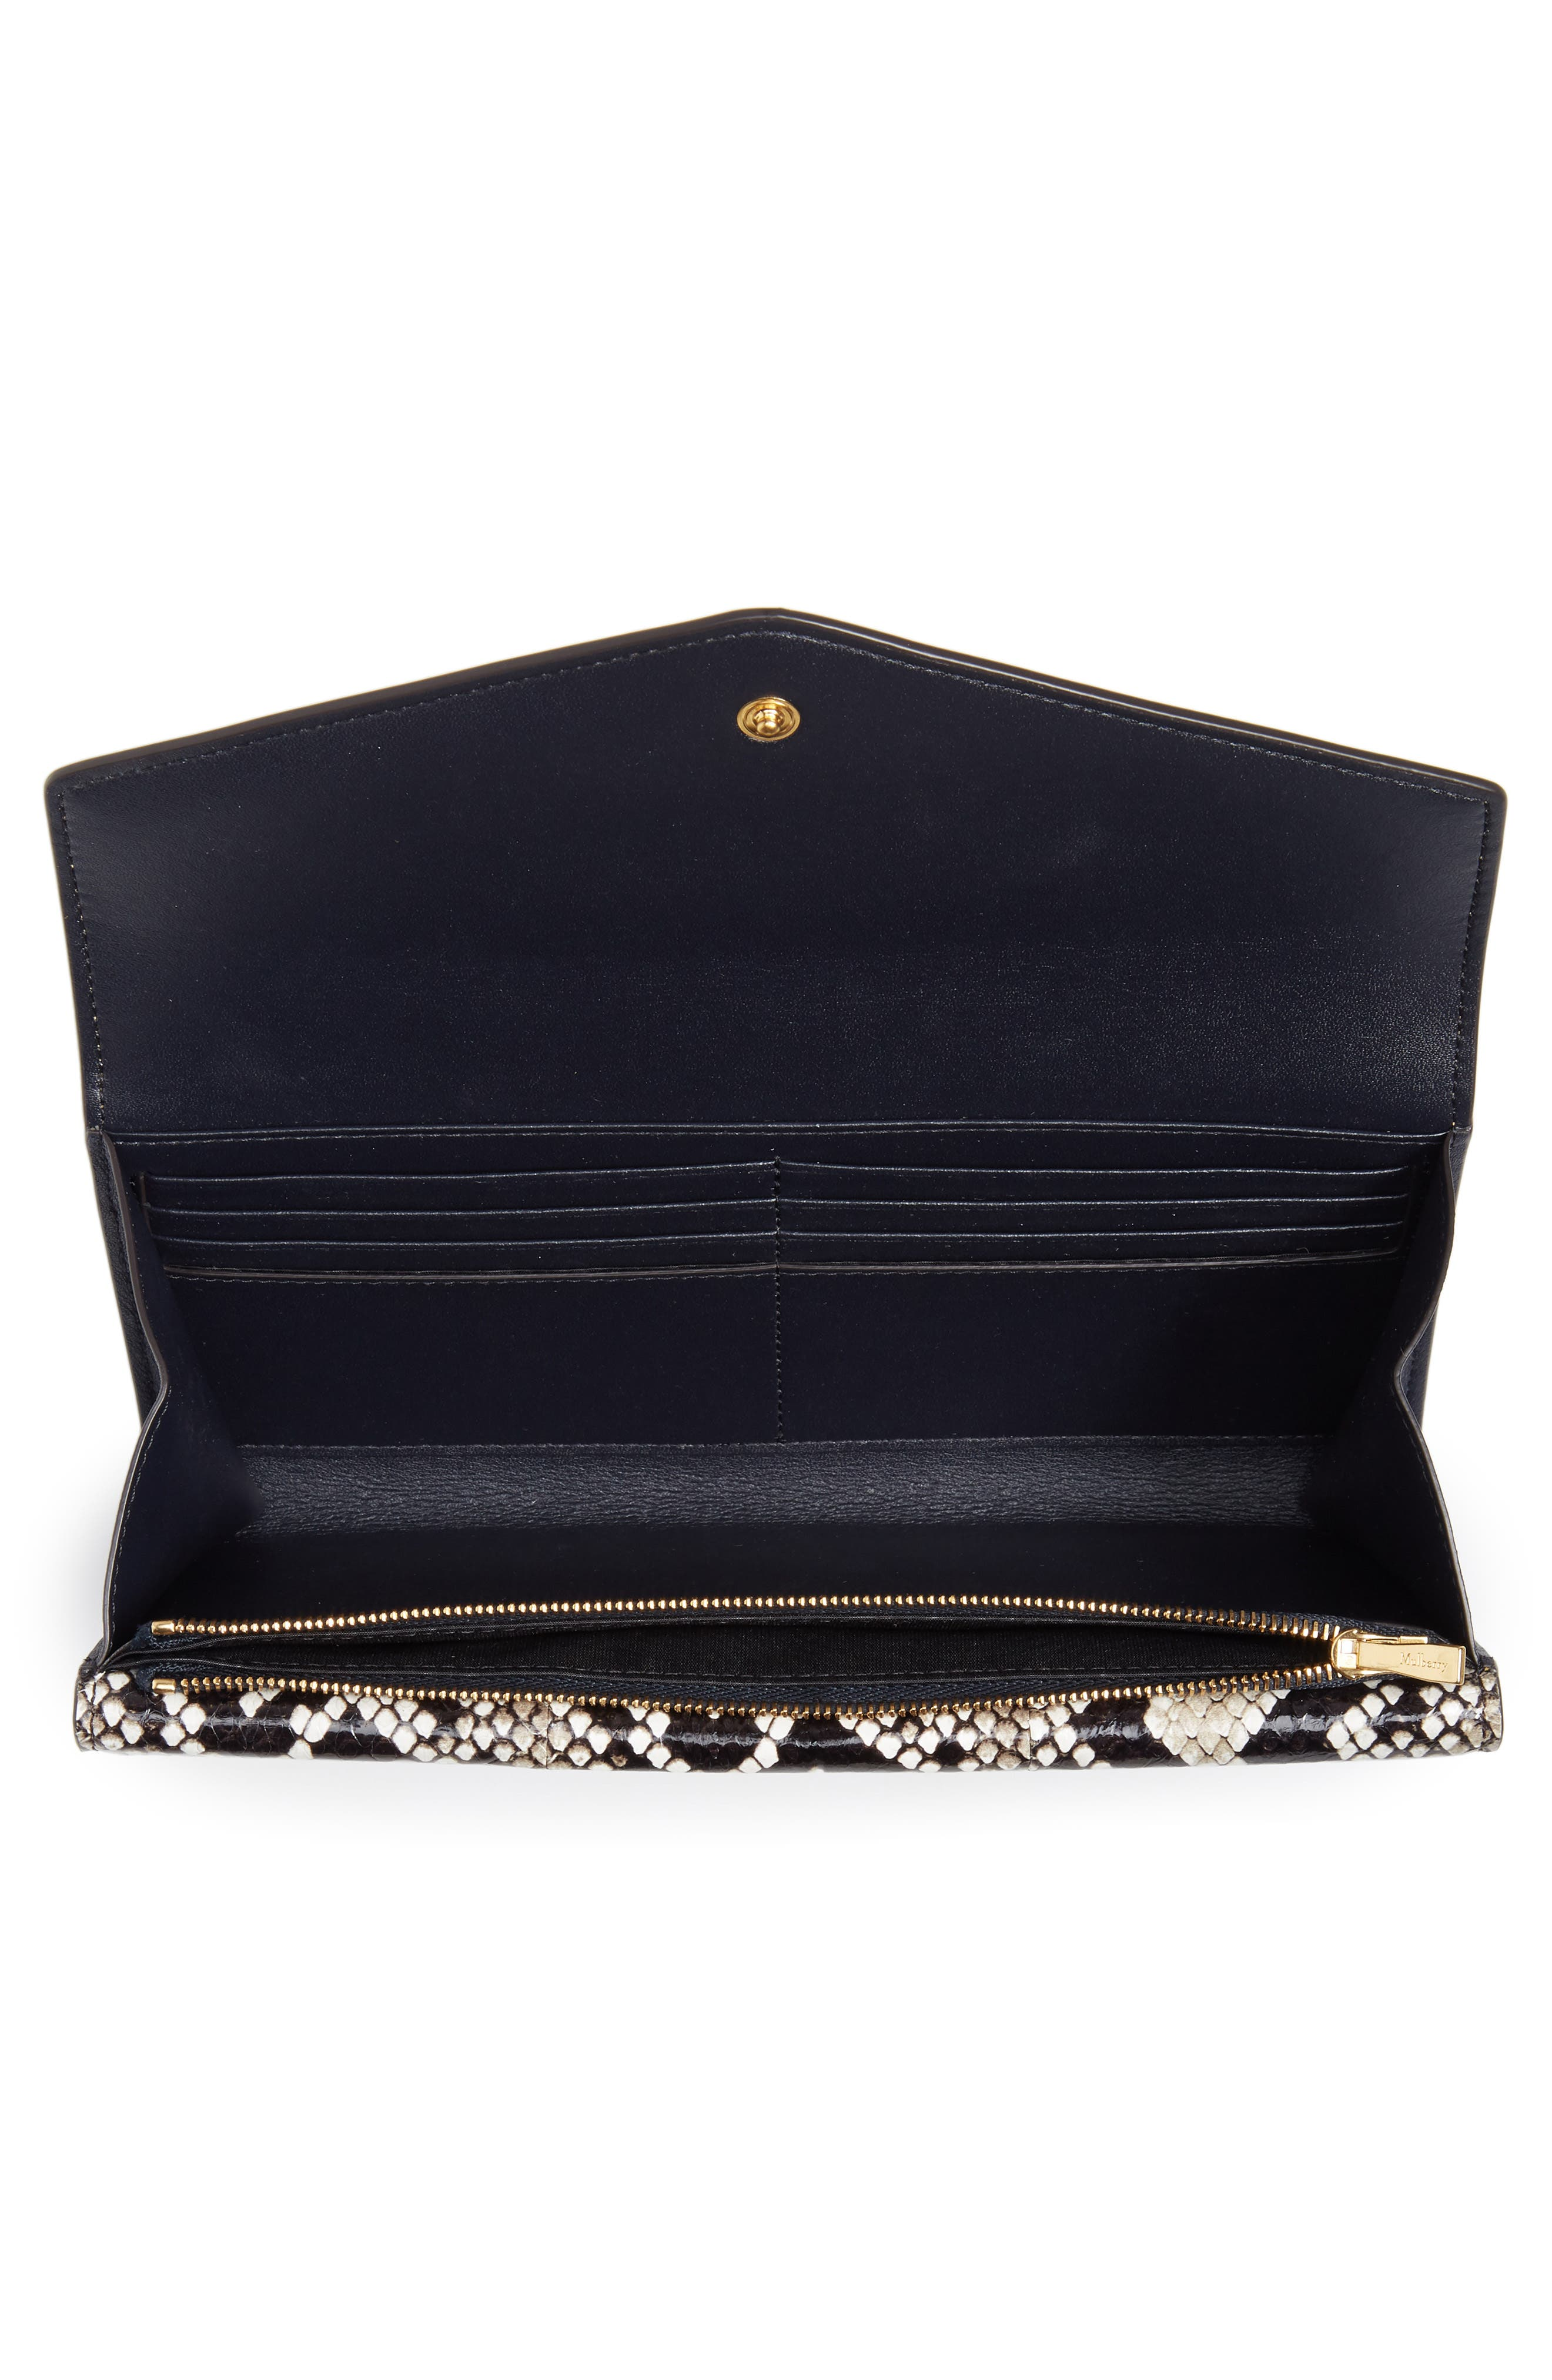 MULBERRY, Mulberrry Harlow Calfskin Leather & Genuine Snakeskin Wallet, Alternate thumbnail 4, color, MAIZE YELLOW/ MIDNIGHT